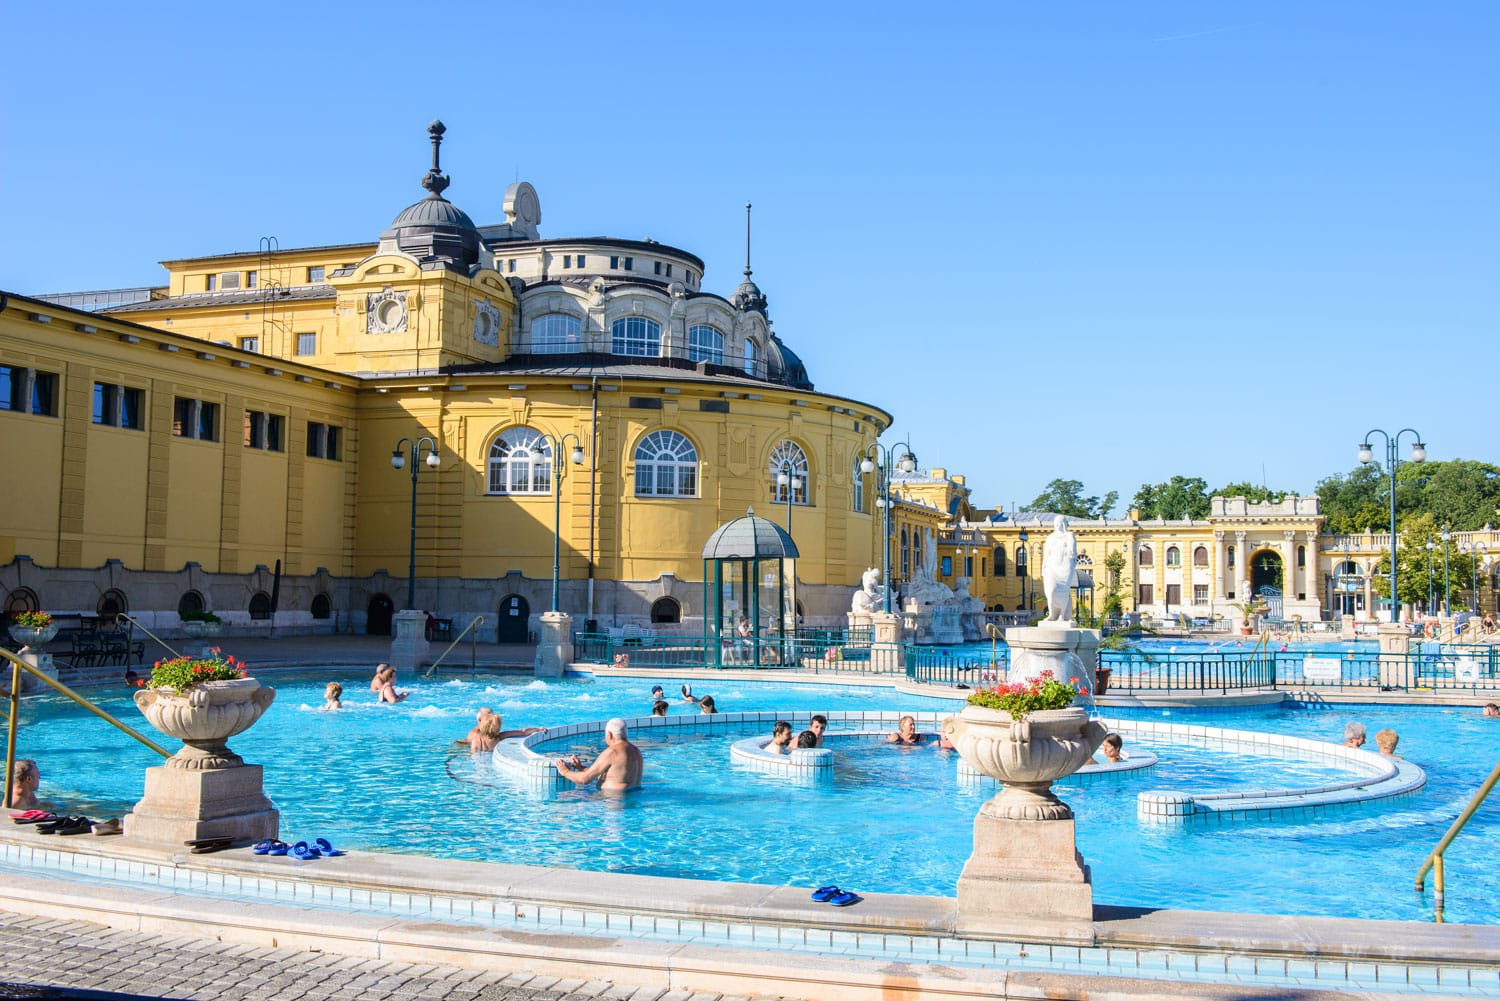 View of the Szechenyi Medicinal Bath in Budapest